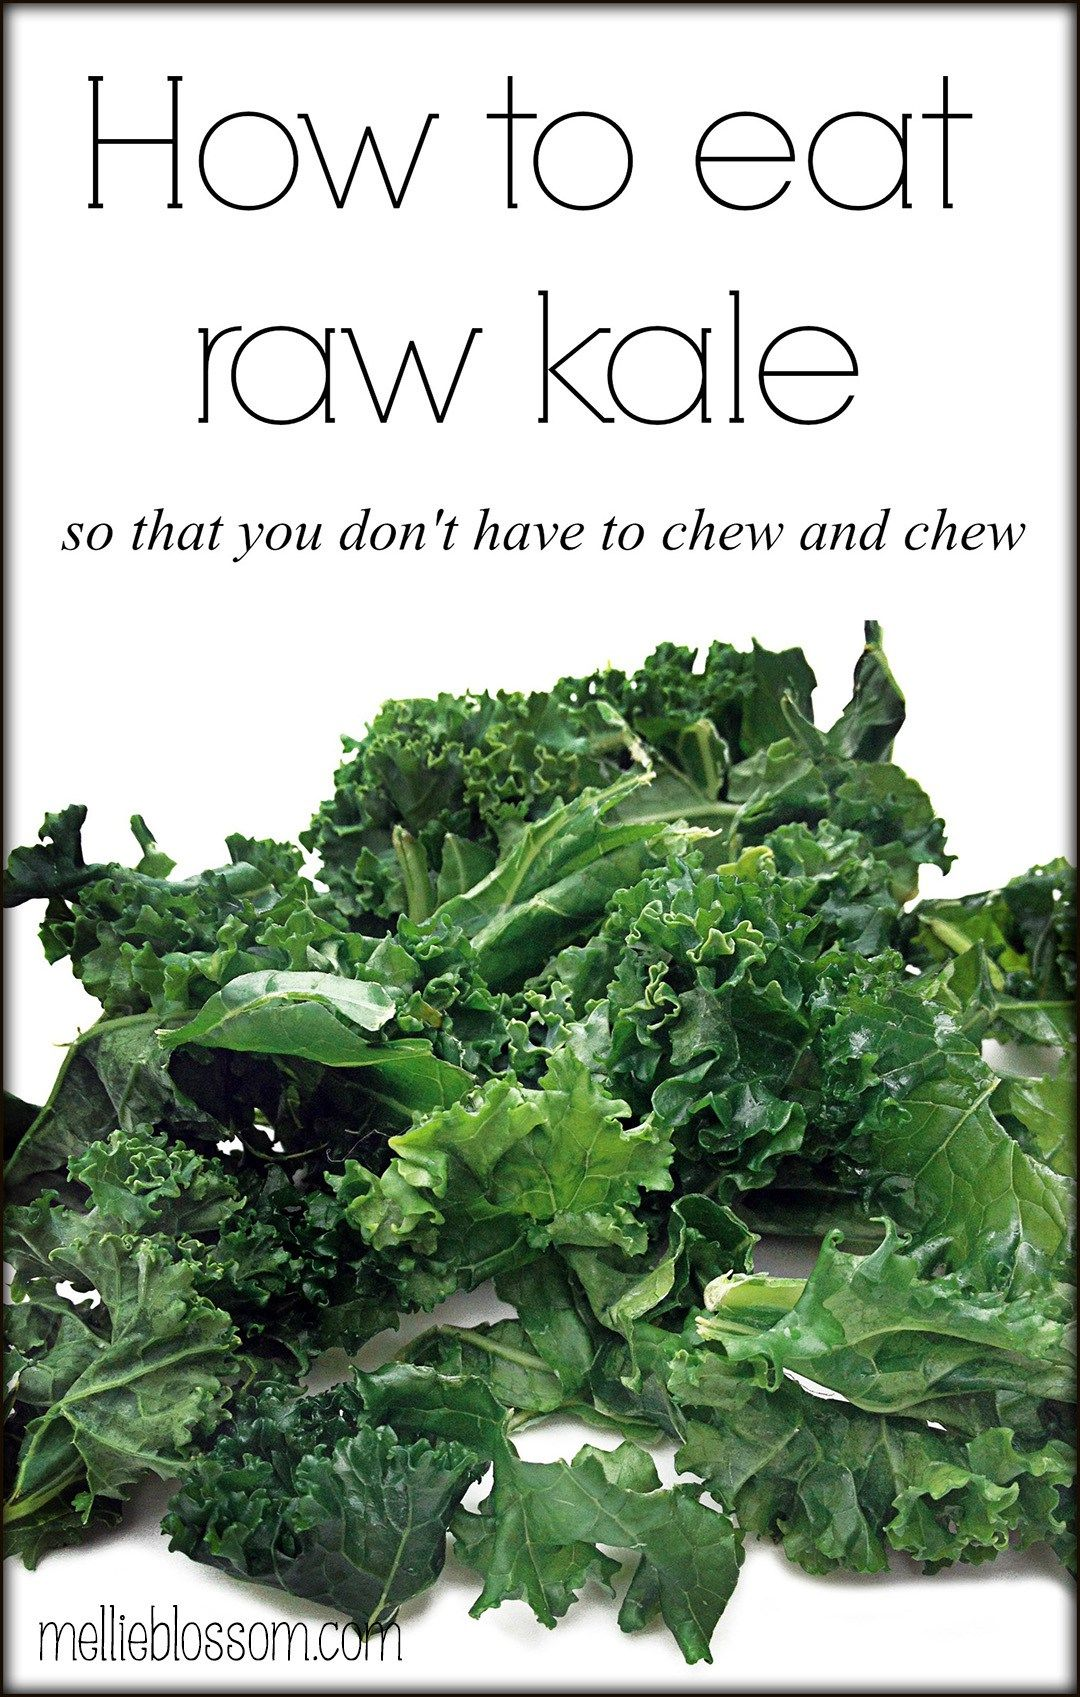 FELICIA: Is it safe to eat kale raw